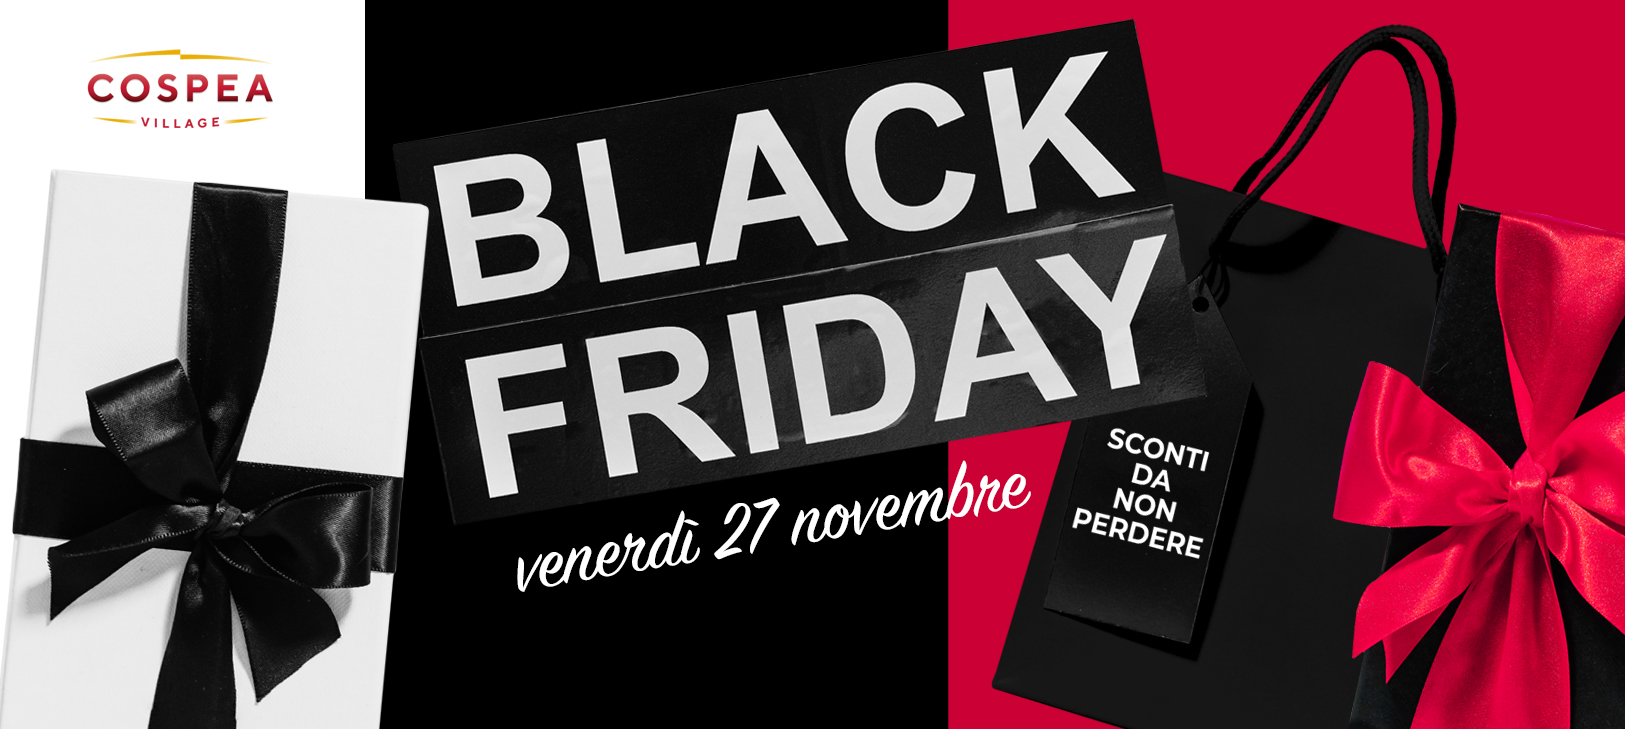 https://www.cospeavillage.it/carosello/black-friday-al-cospea-village/bf780x350/